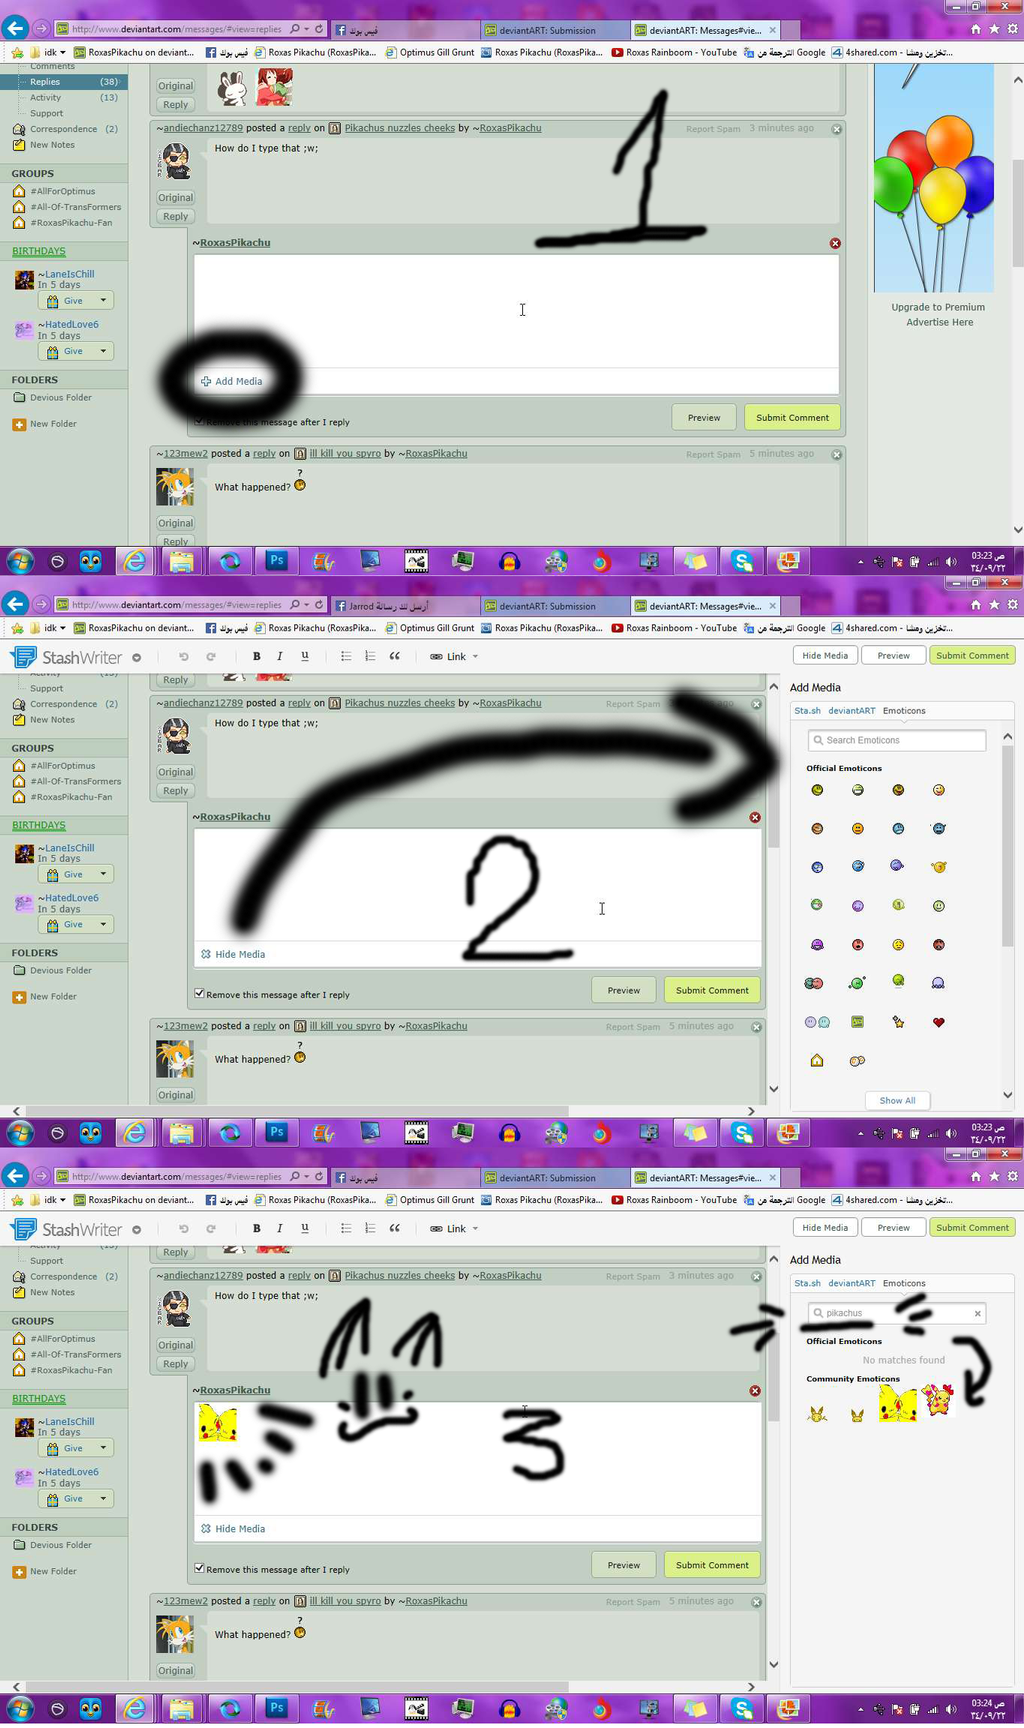 how to put icons in chats